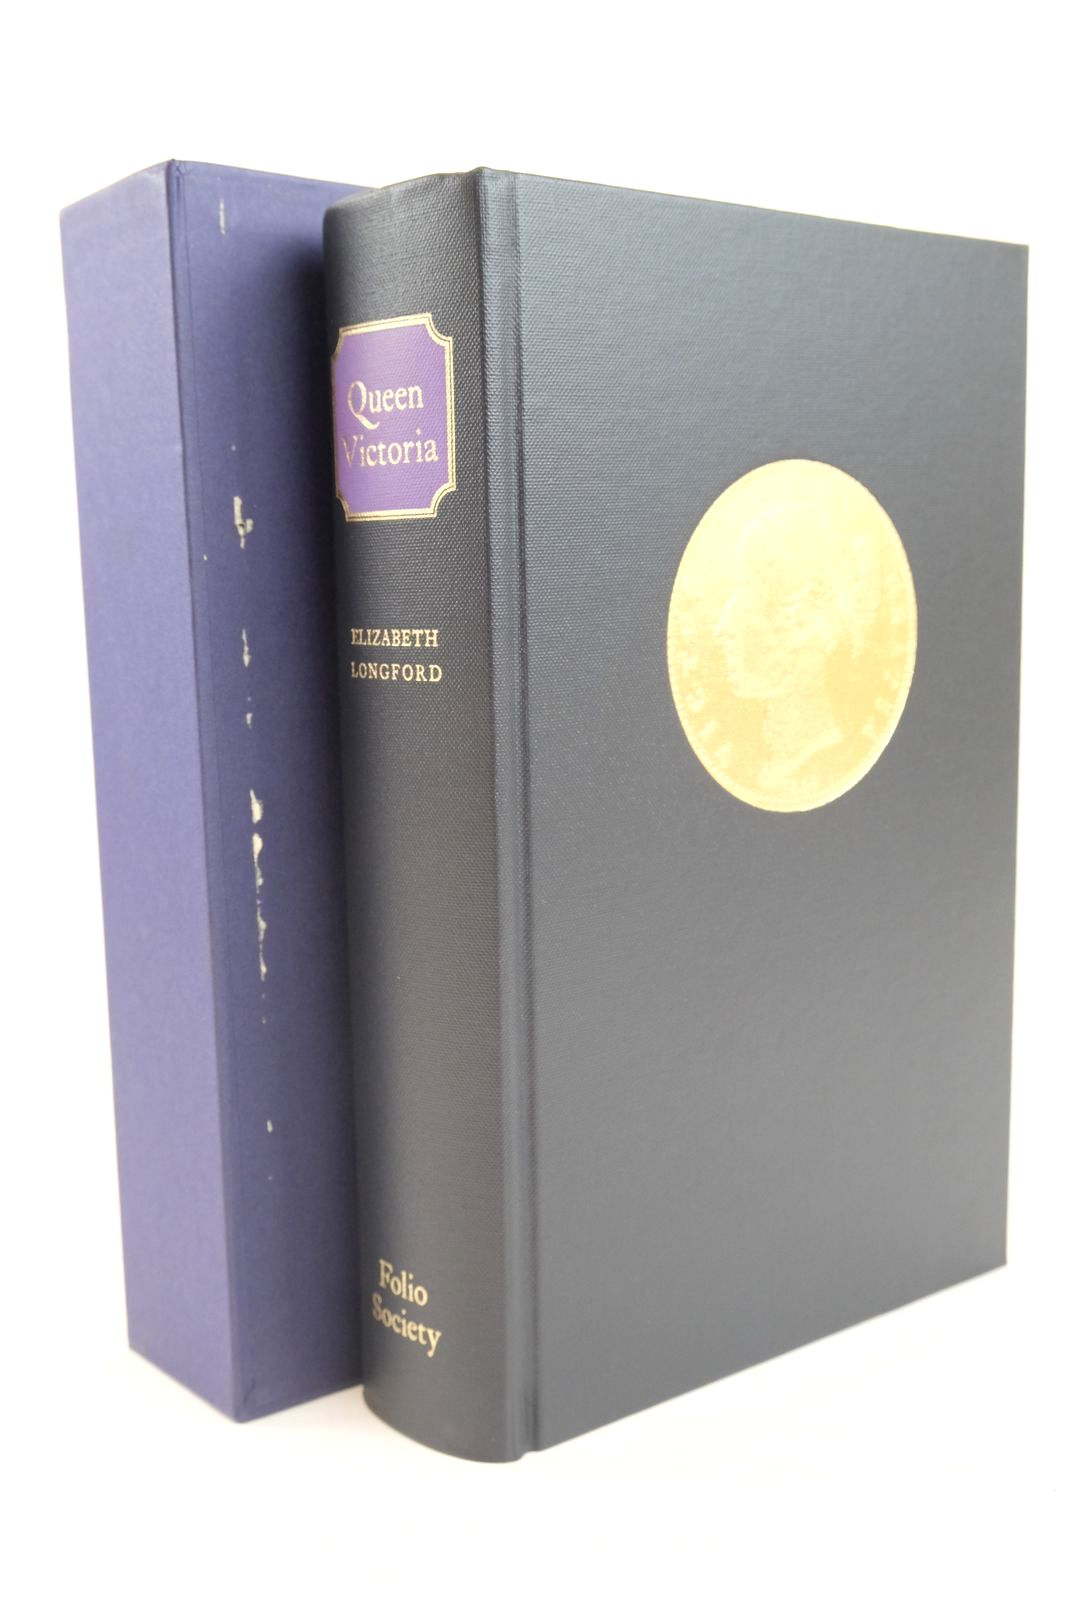 Photo of QUEEN VICTORIA written by Longford, Elizabeth published by Folio Society (STOCK CODE: 1320076)  for sale by Stella & Rose's Books